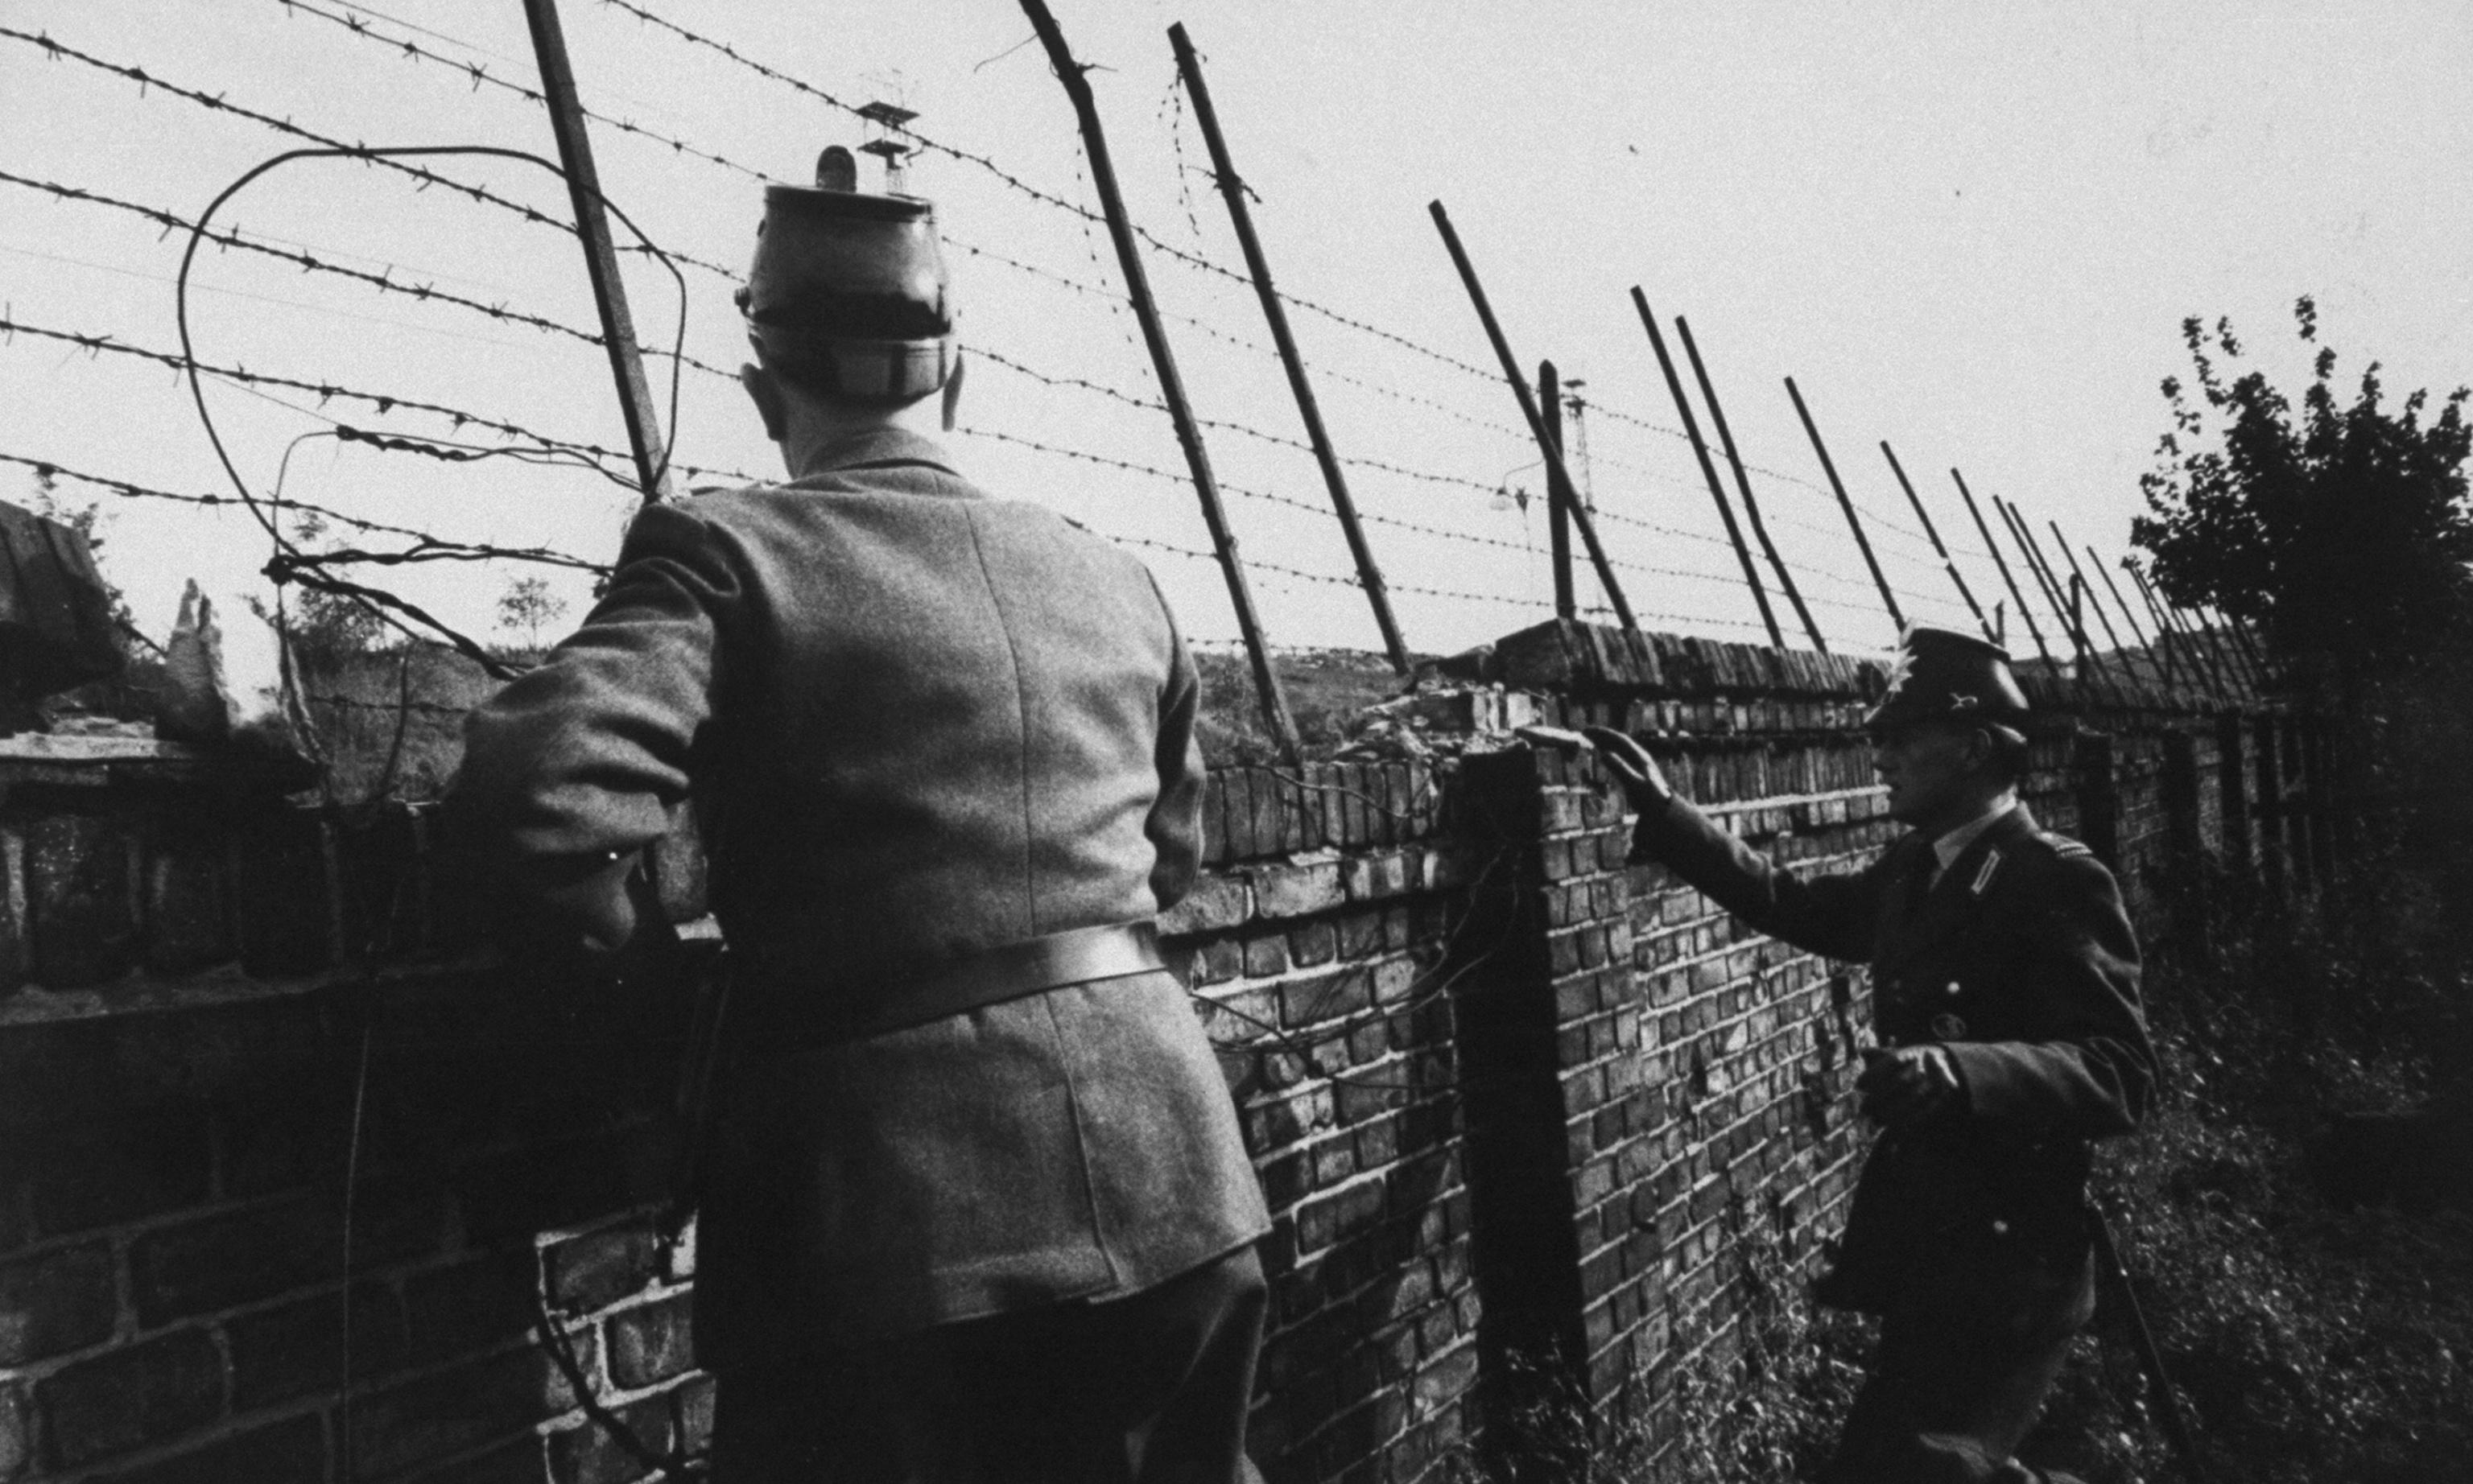 An unbelievable escape ... under the Berlin Wall – podcasts of the week